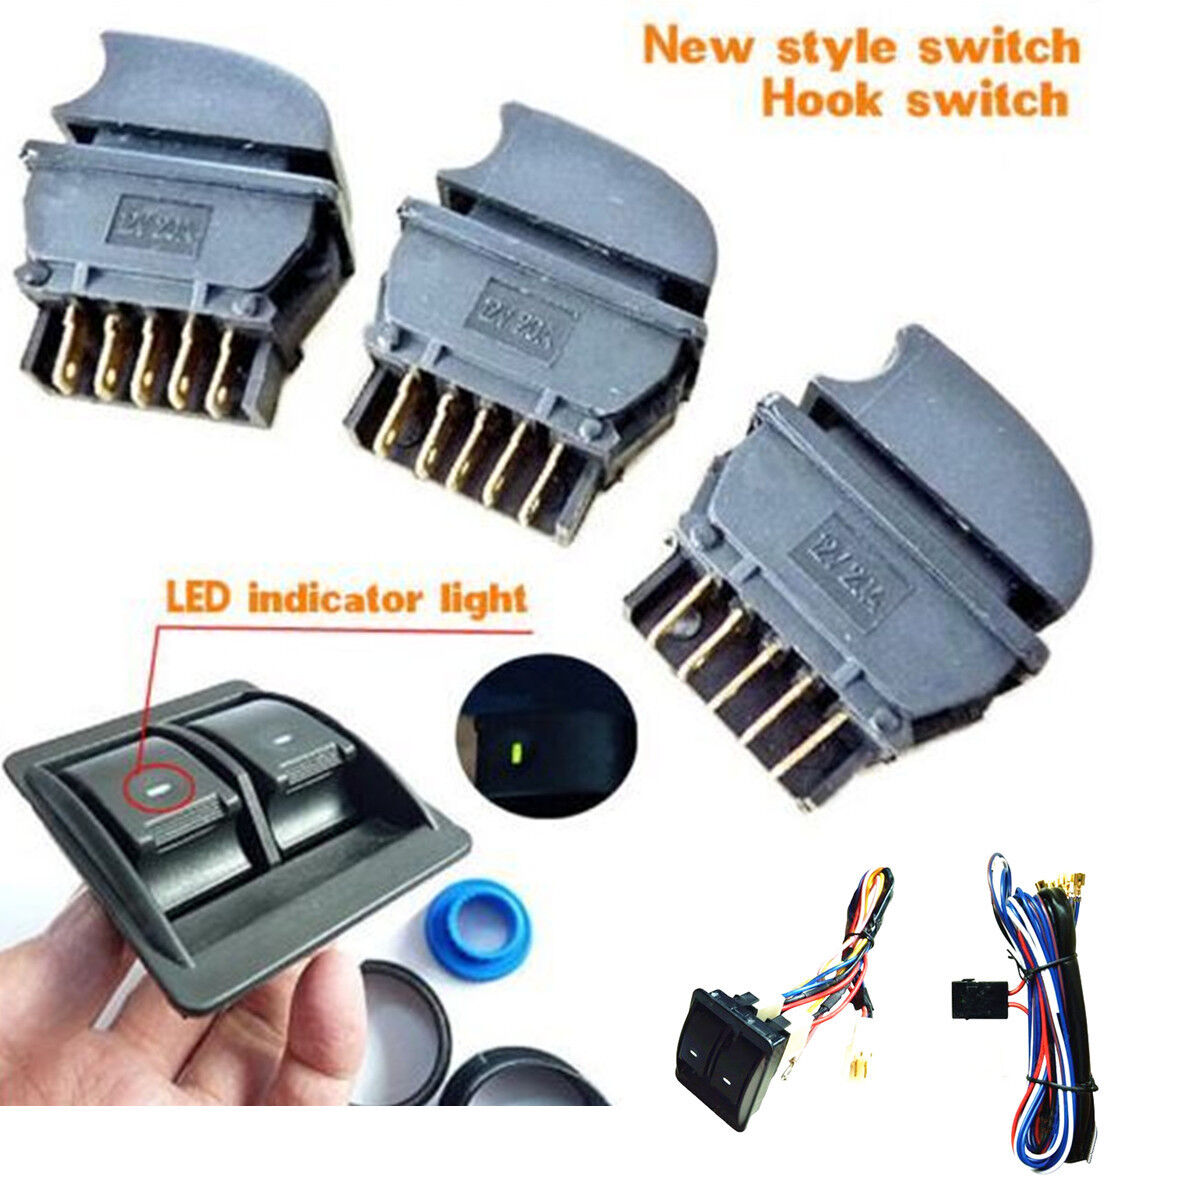 s l1600 12v car power window switch with wire harness universal kits universal 12 volt wiring harness at alyssarenee.co